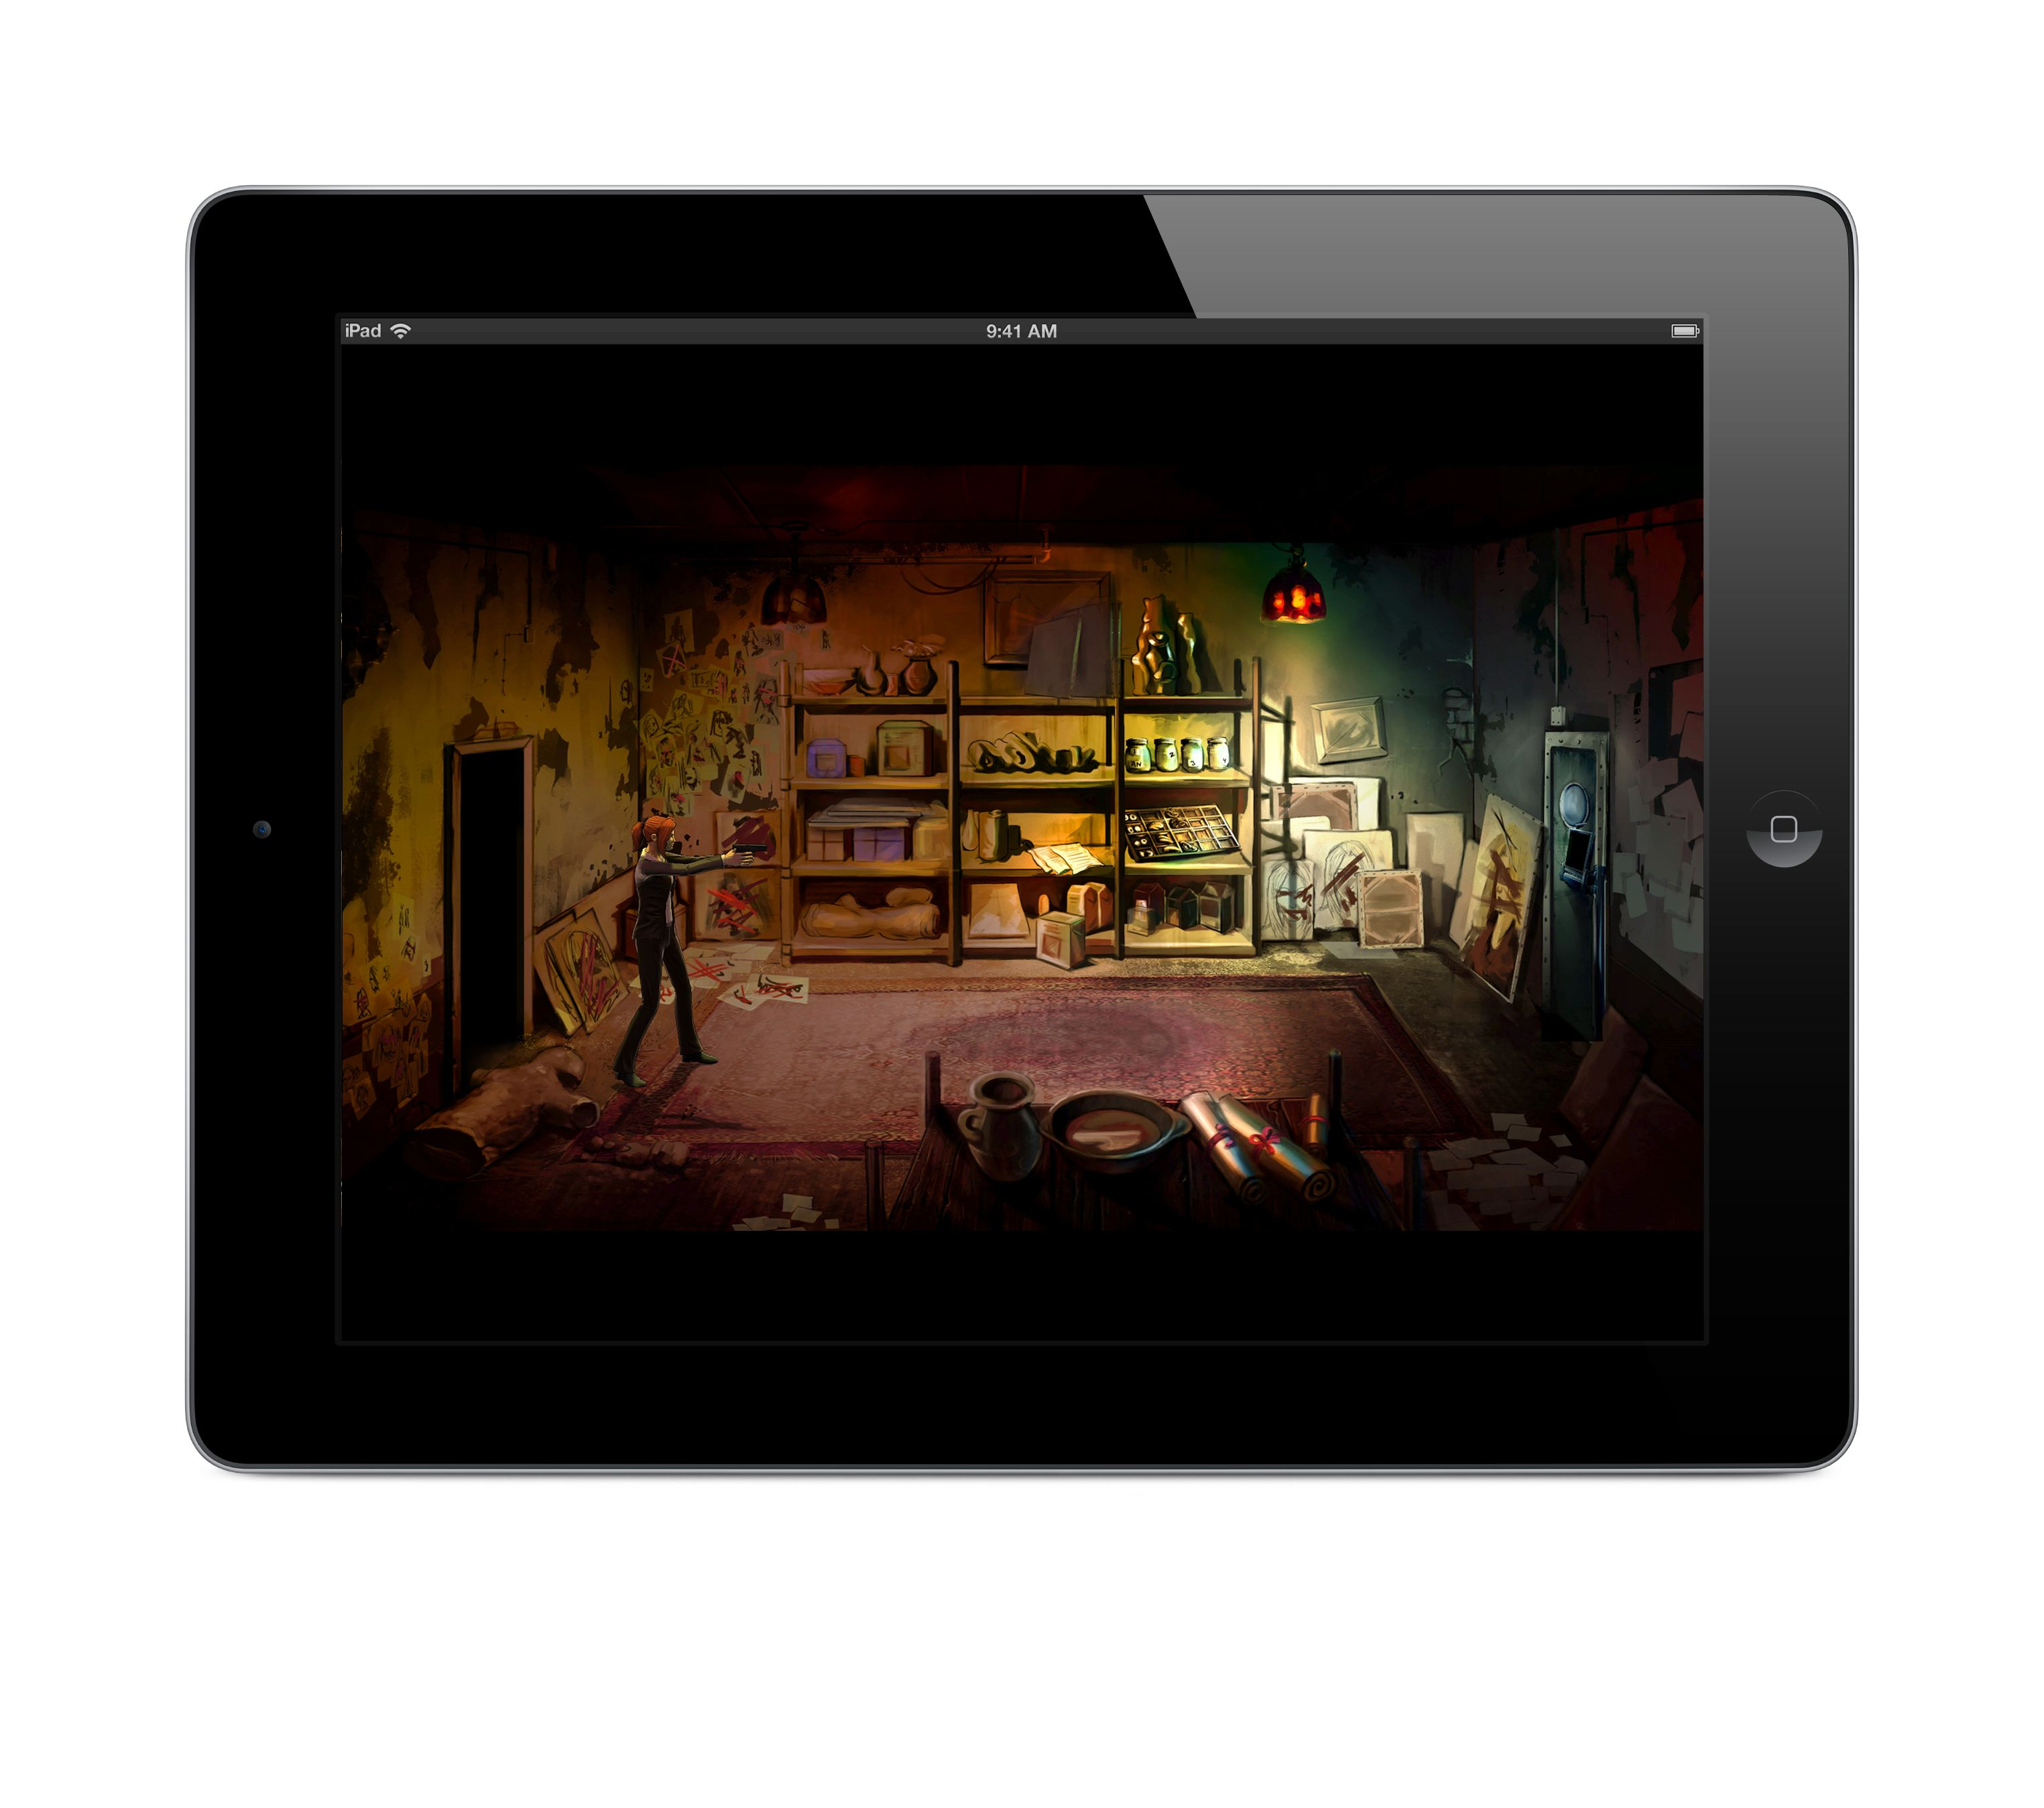 iPad Apps Games